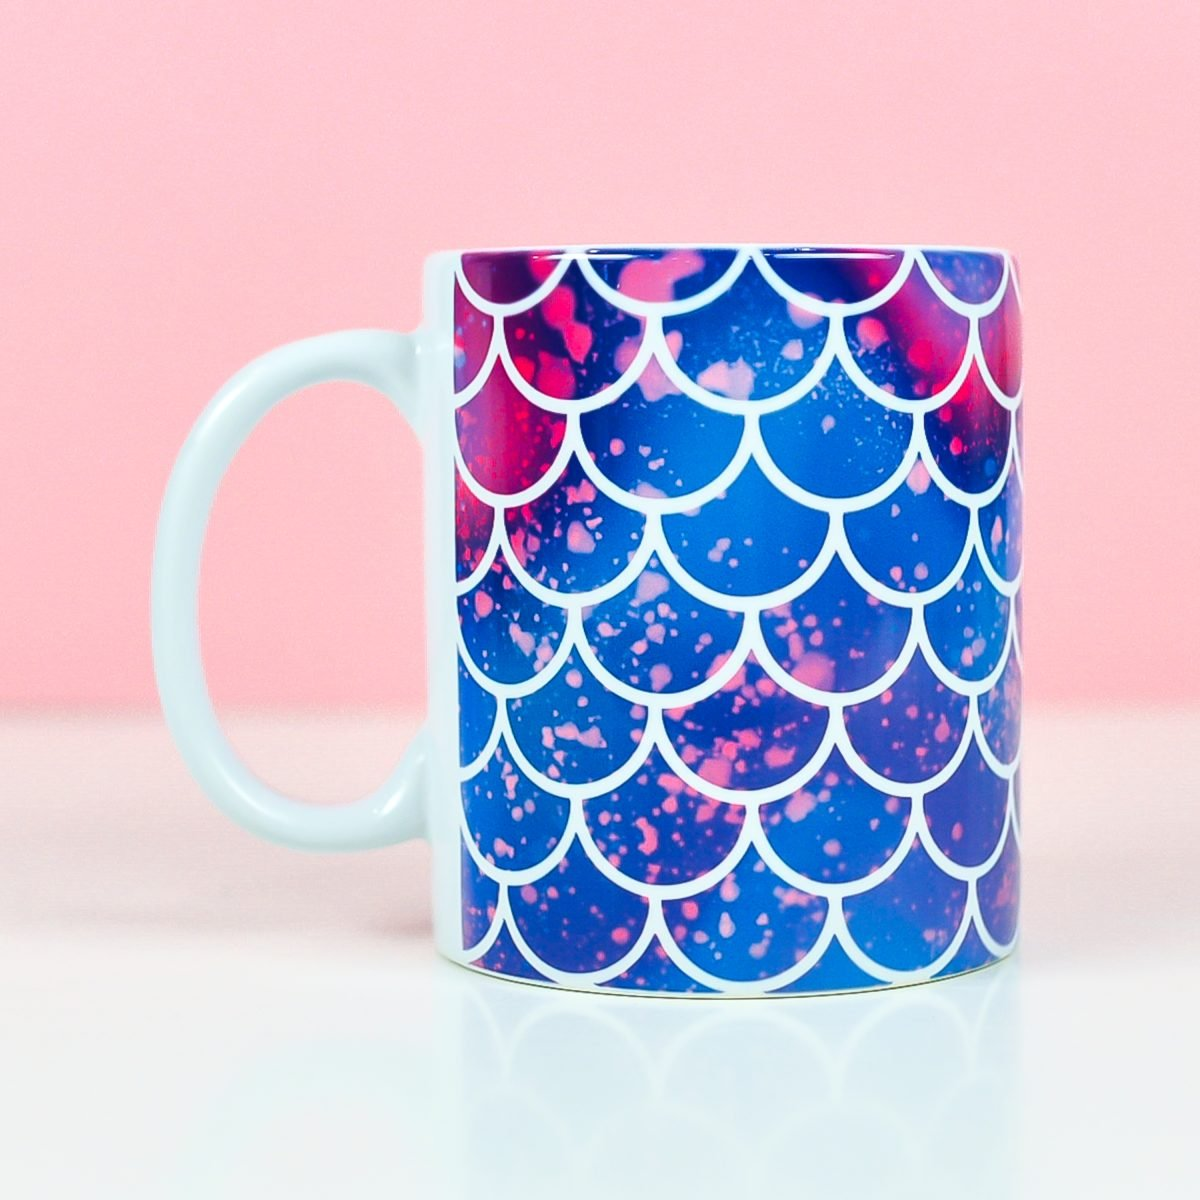 Mermaid mug on pink background made with mermaid mug wrap design